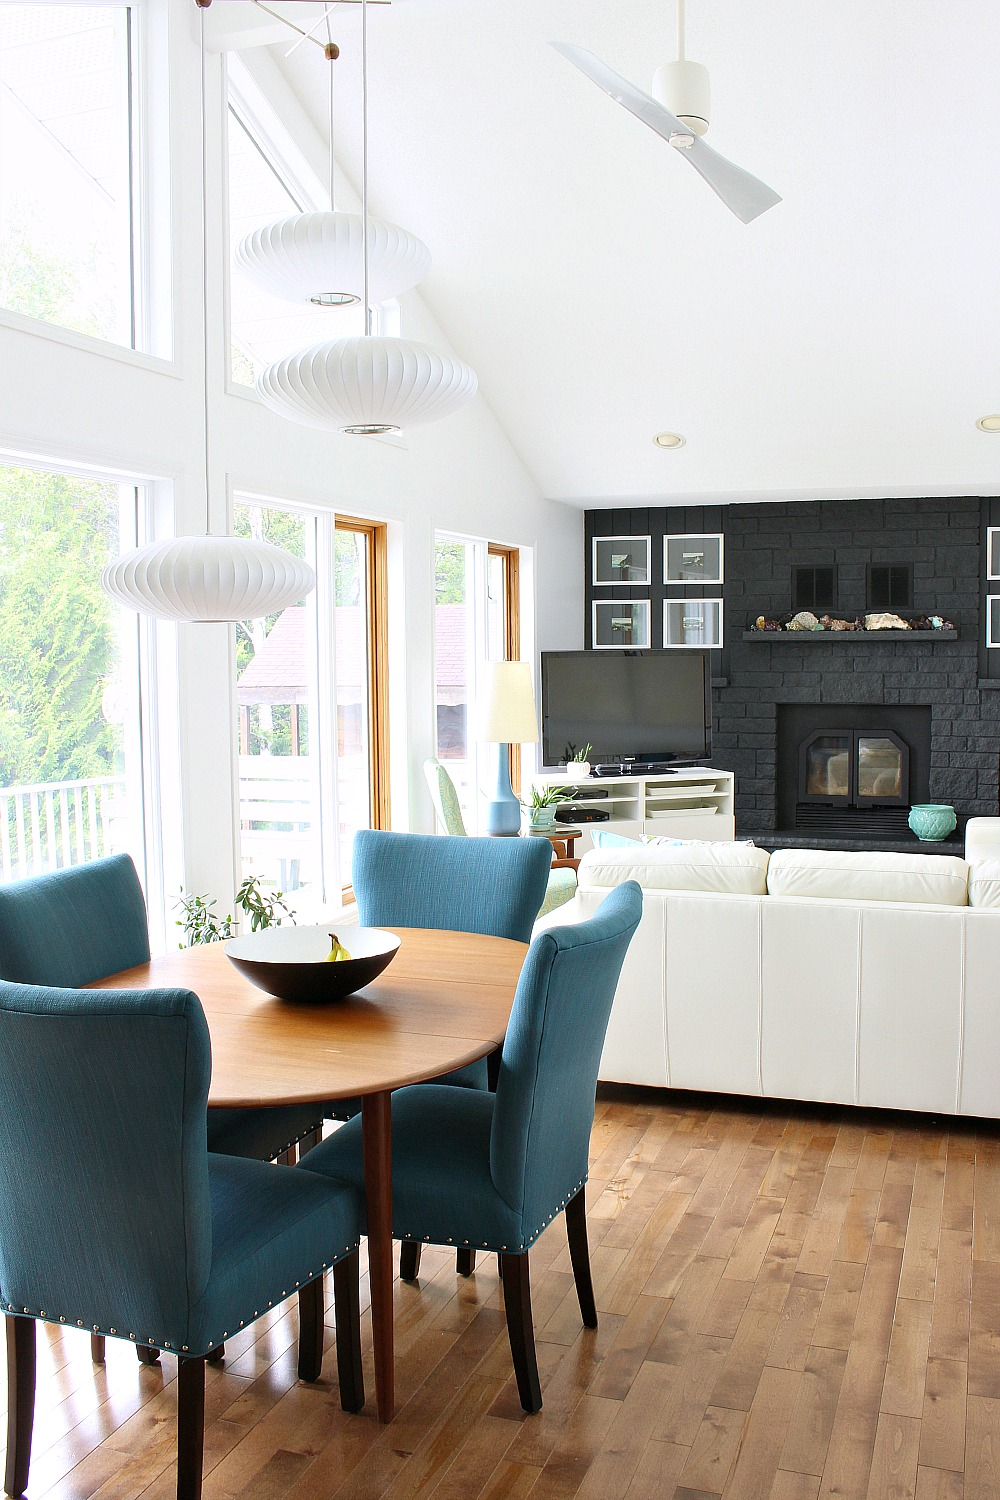 Lake House Living Room Decor // Mid-Century Modern Inspired Lakeside Bungalow